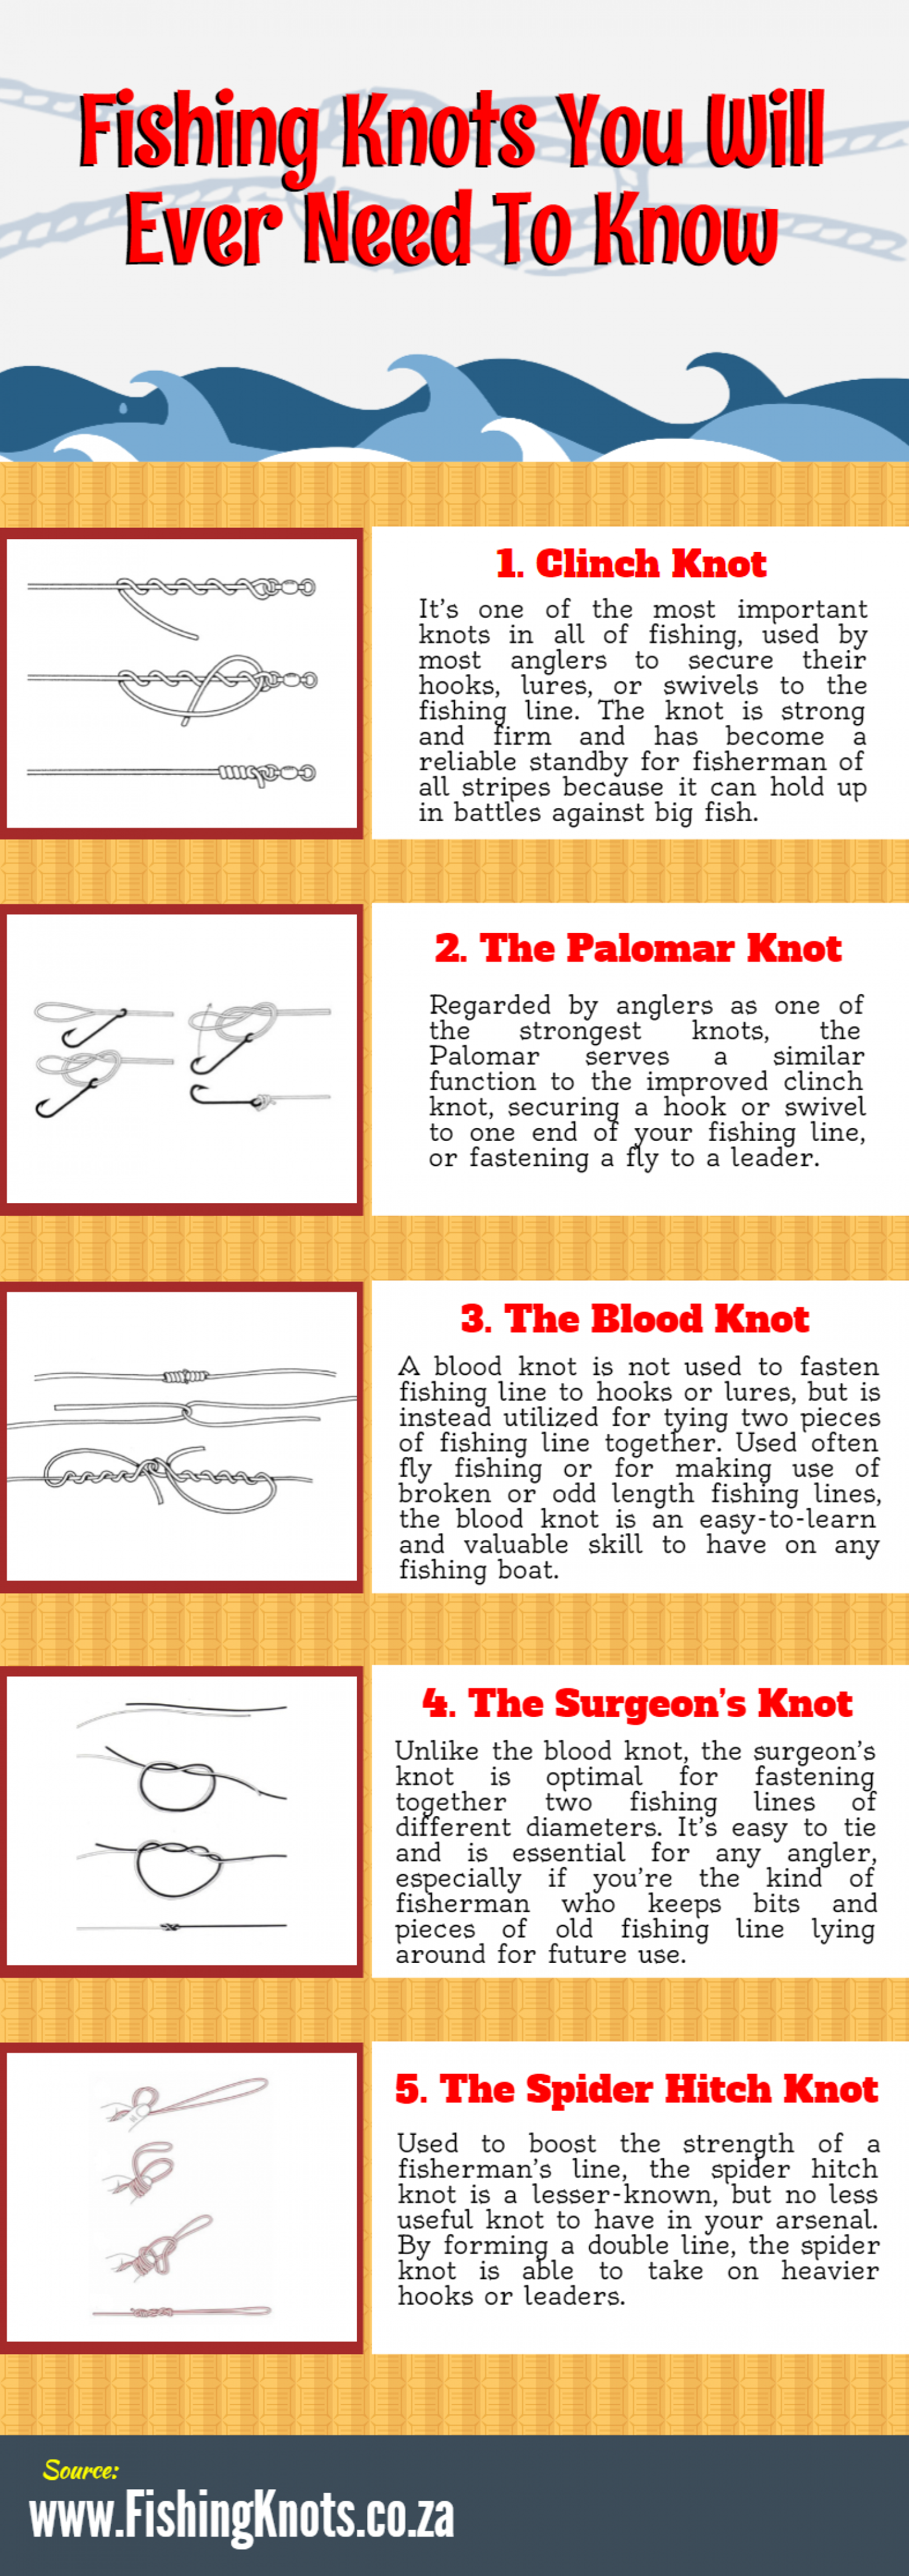 Fishing Knots You Will Ever Need To Know Infographic